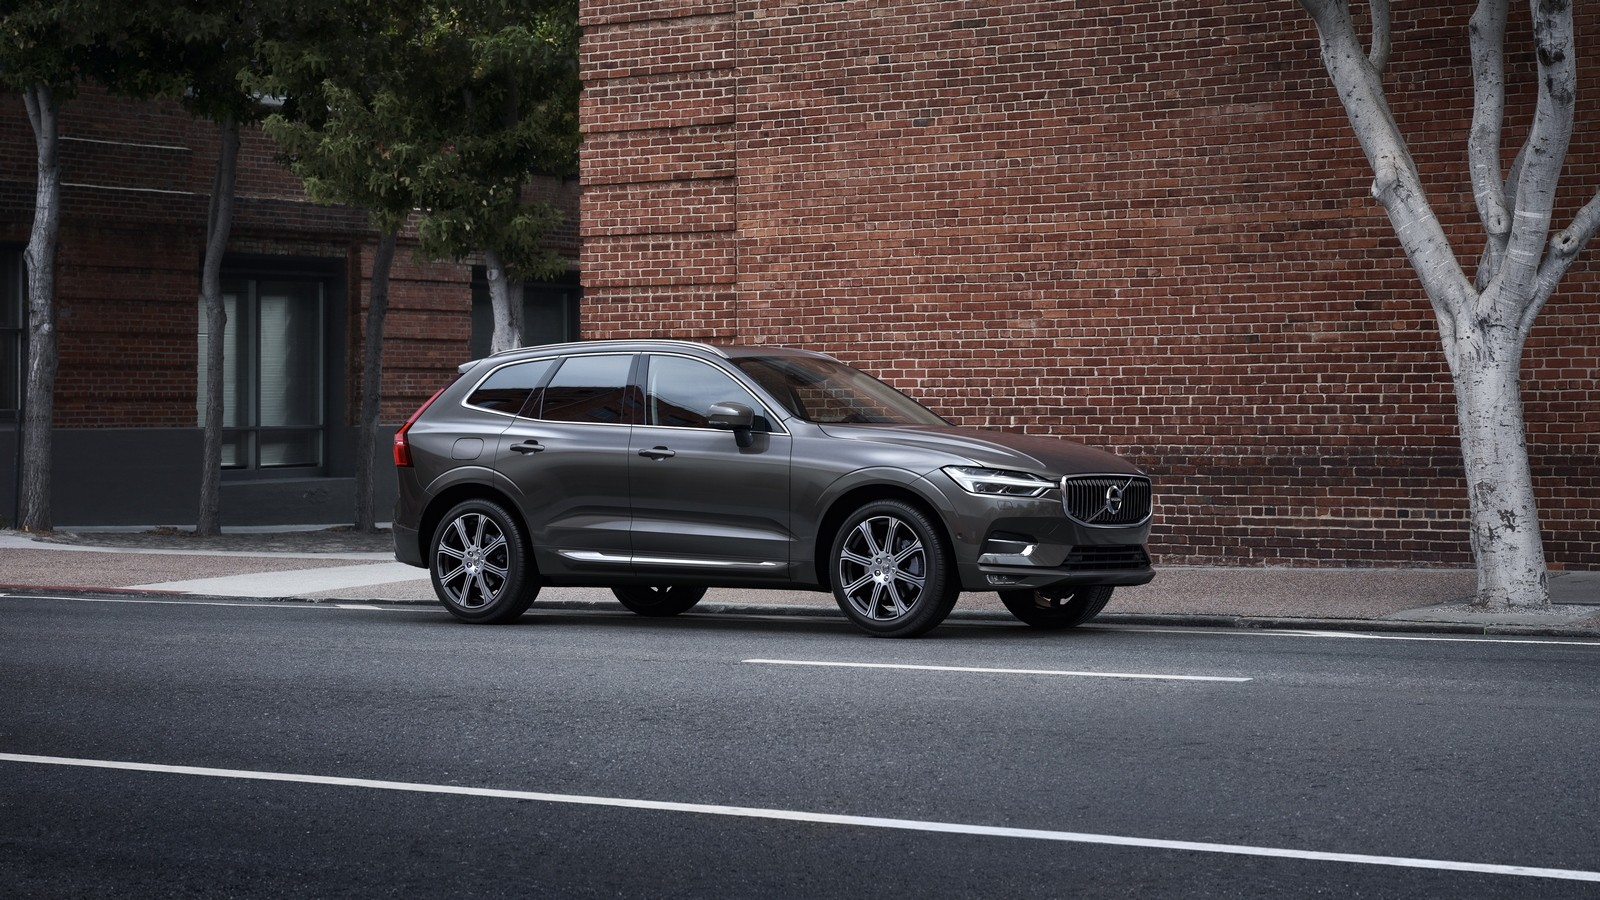 4_The new Volvo XC60 T6 Inscription in Pine Grey